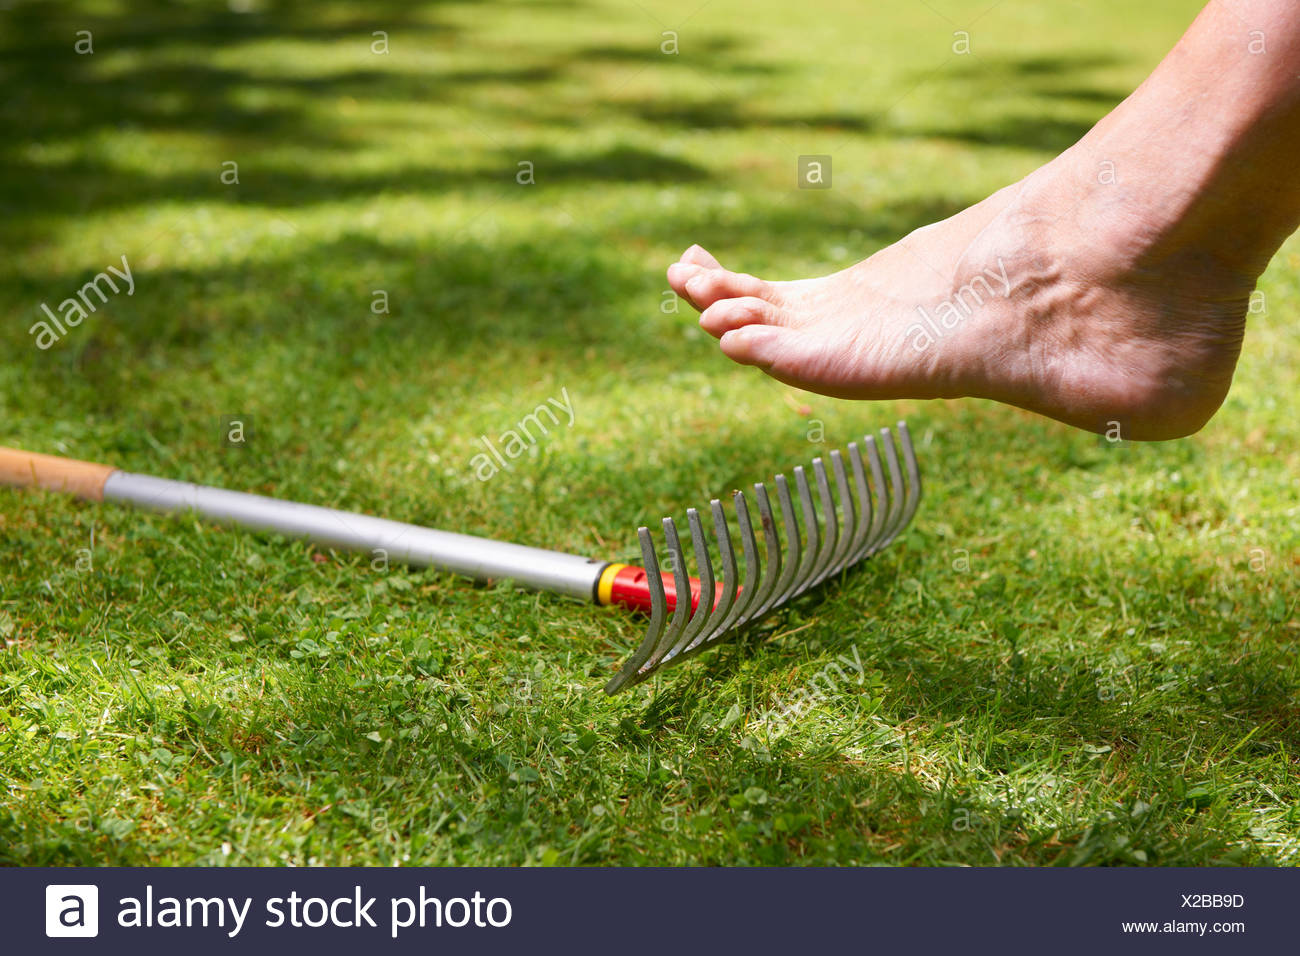 Bare foot about to step on rake - Stock Image